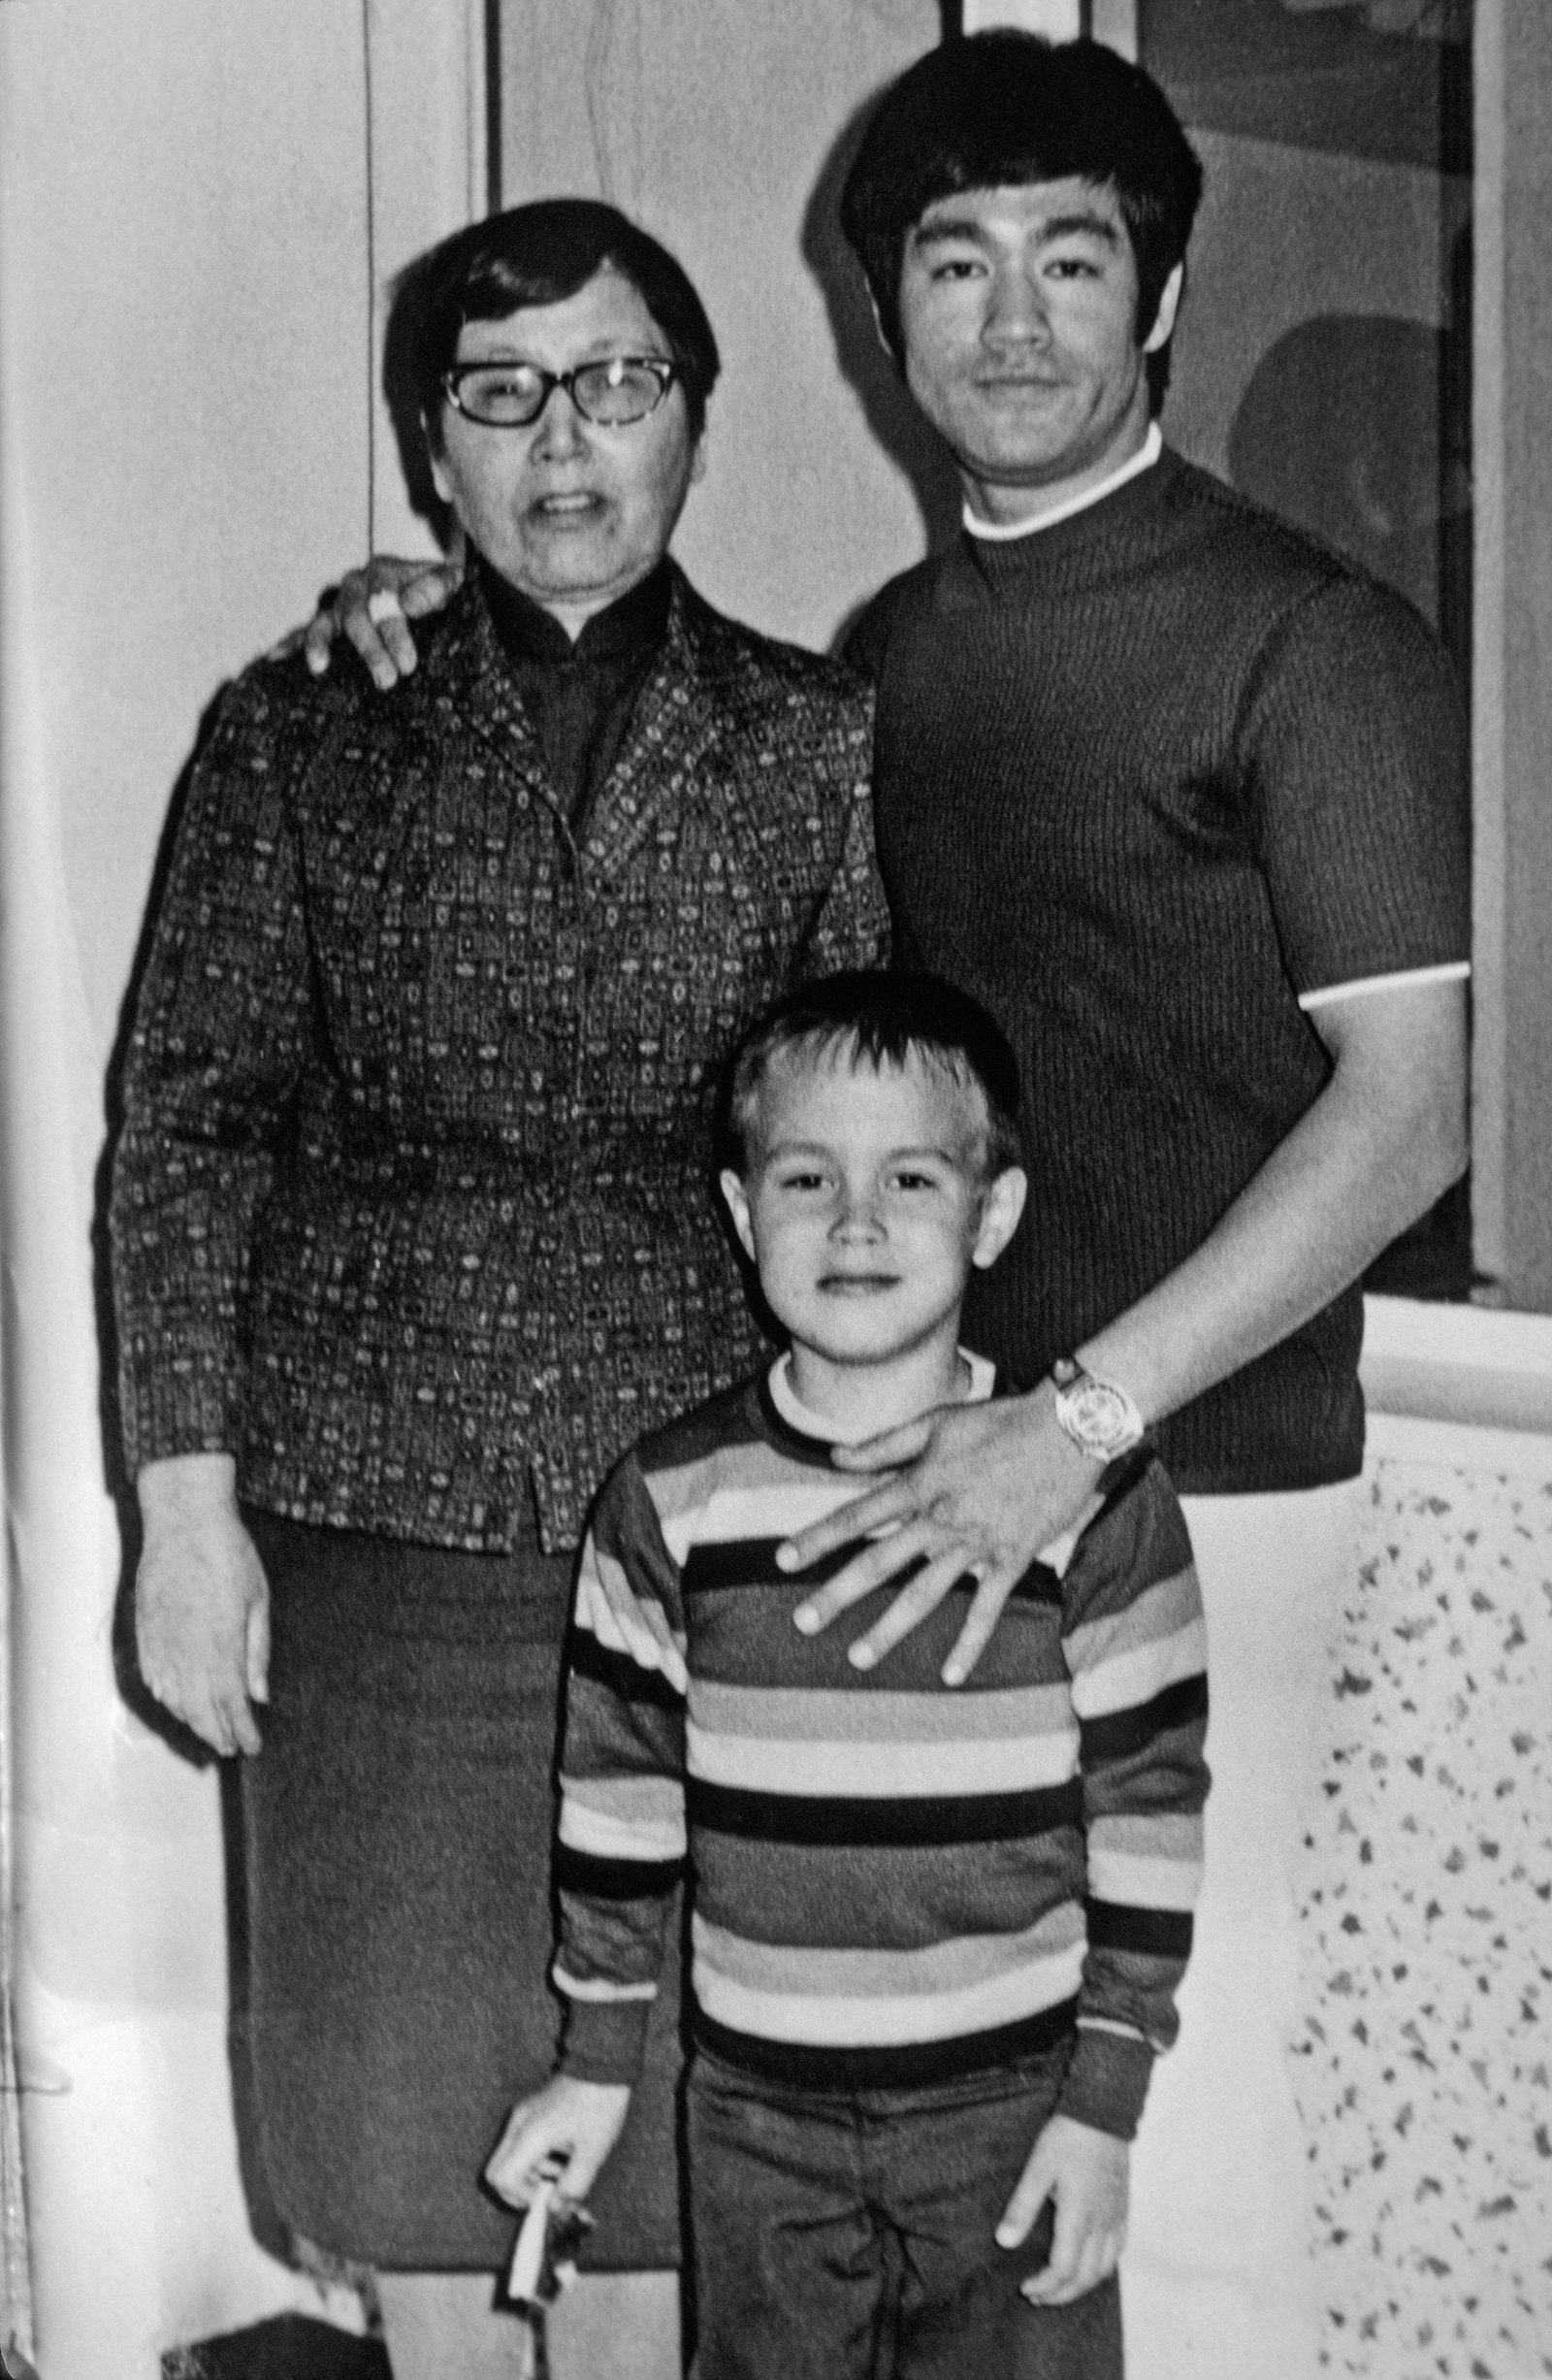 bruce and family